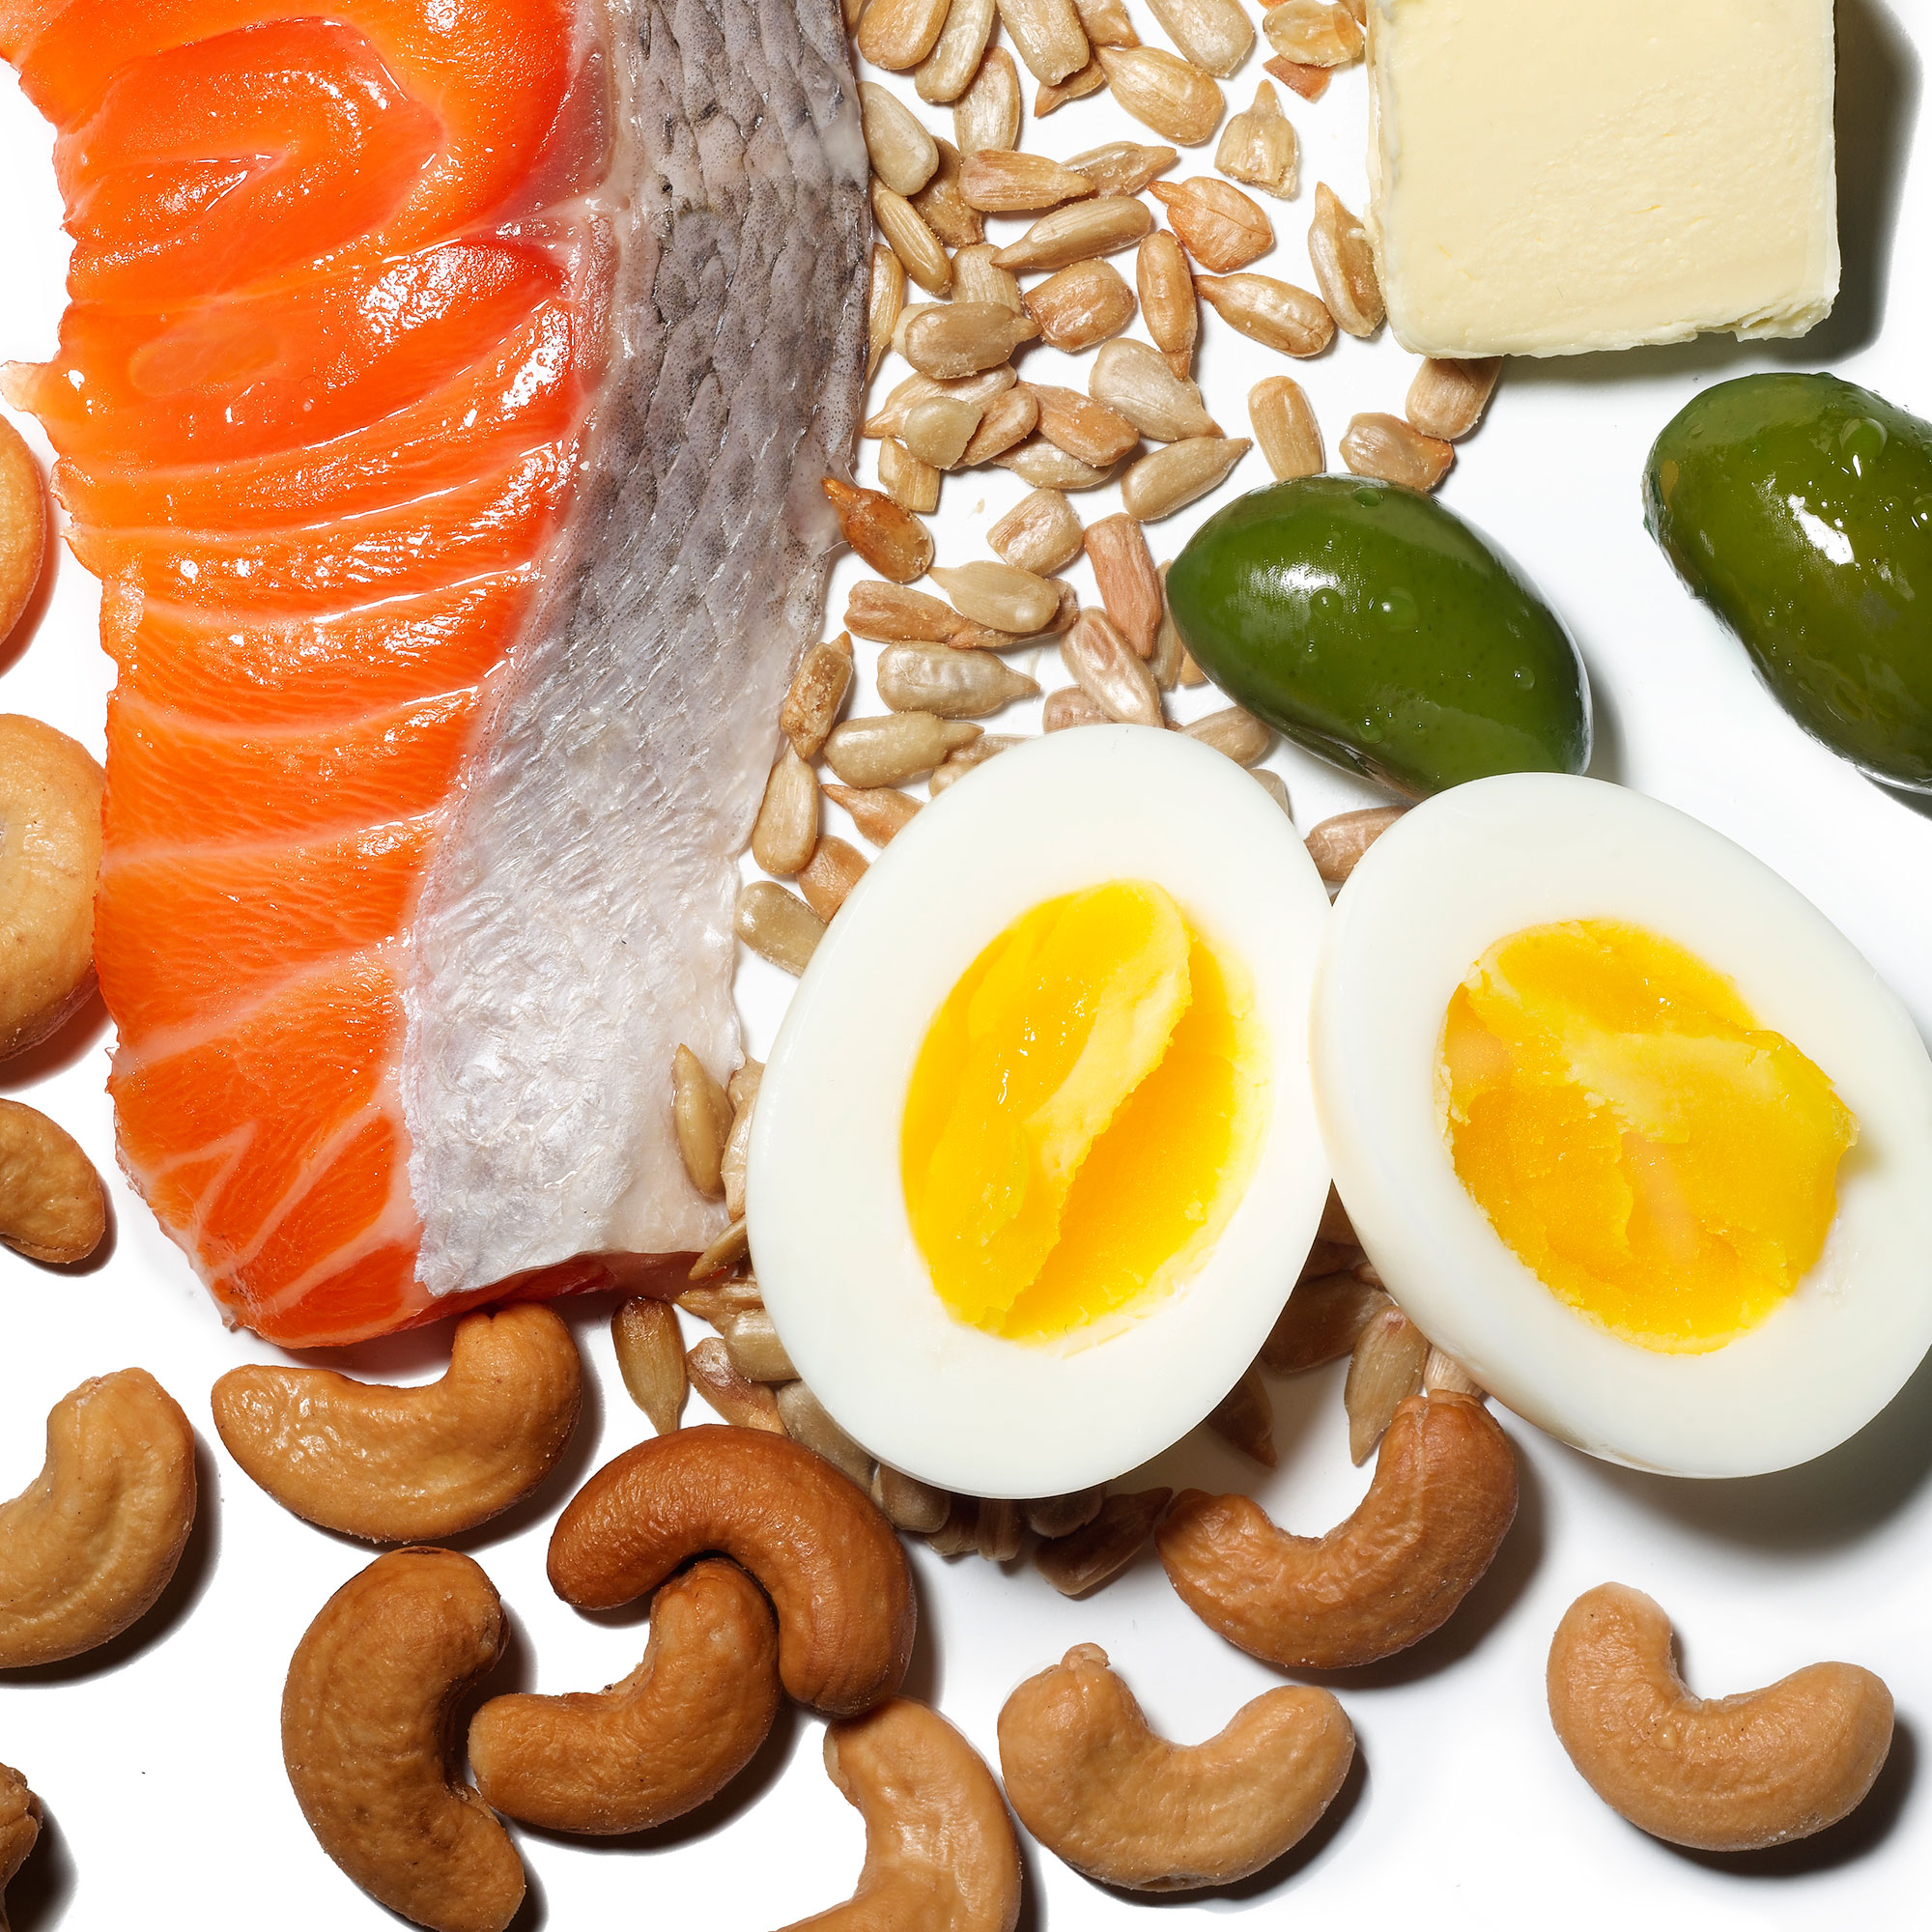 If You Have High Cholesterol What Foods Should You Eat